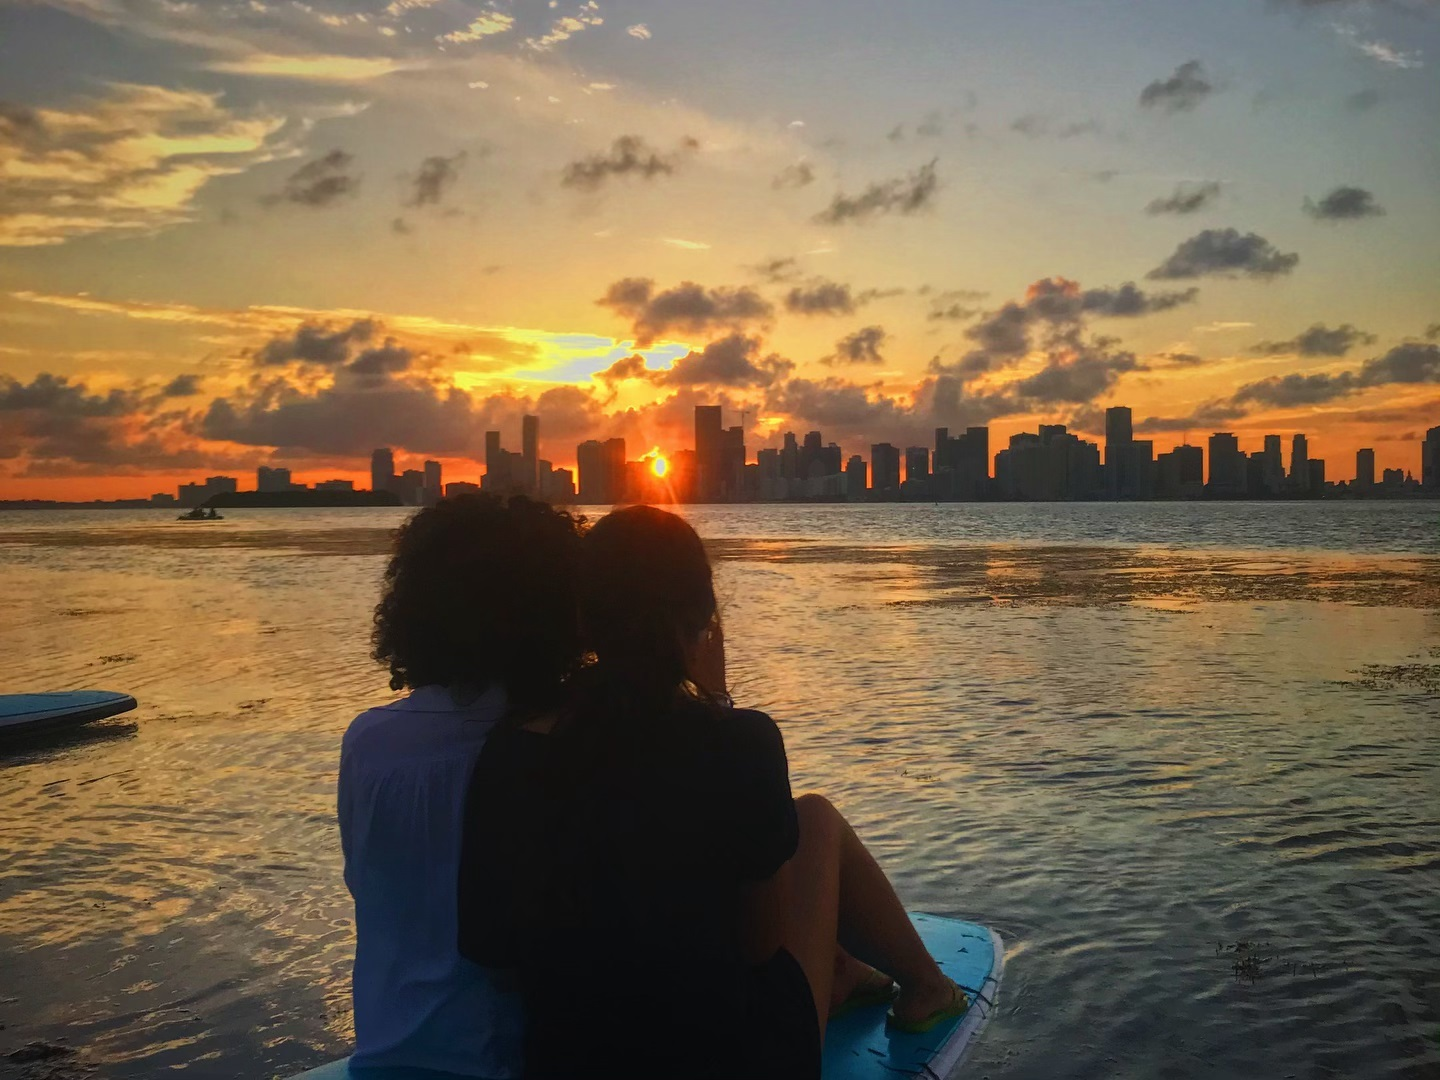 Sunset Kayak & Paddleboard Adventure Tours - August 15th & 29th